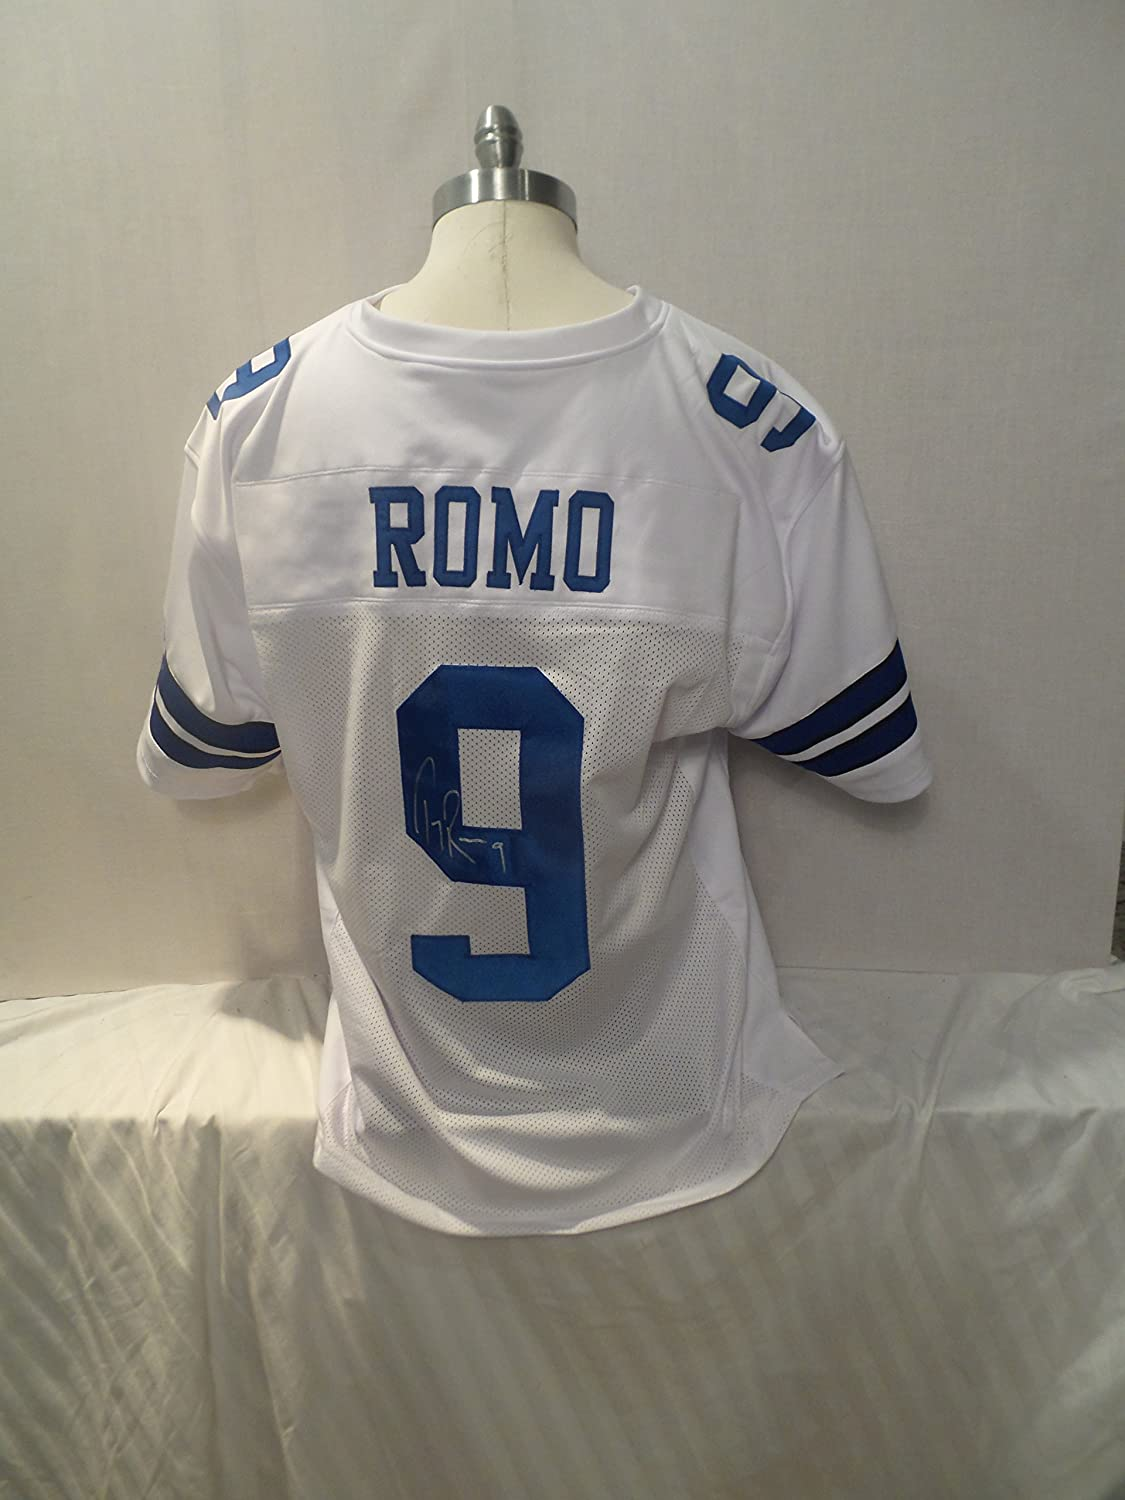 low priced 0a82e b1628 Tony Romo Signed Dallas Cowboys White Autographed Jersey ...